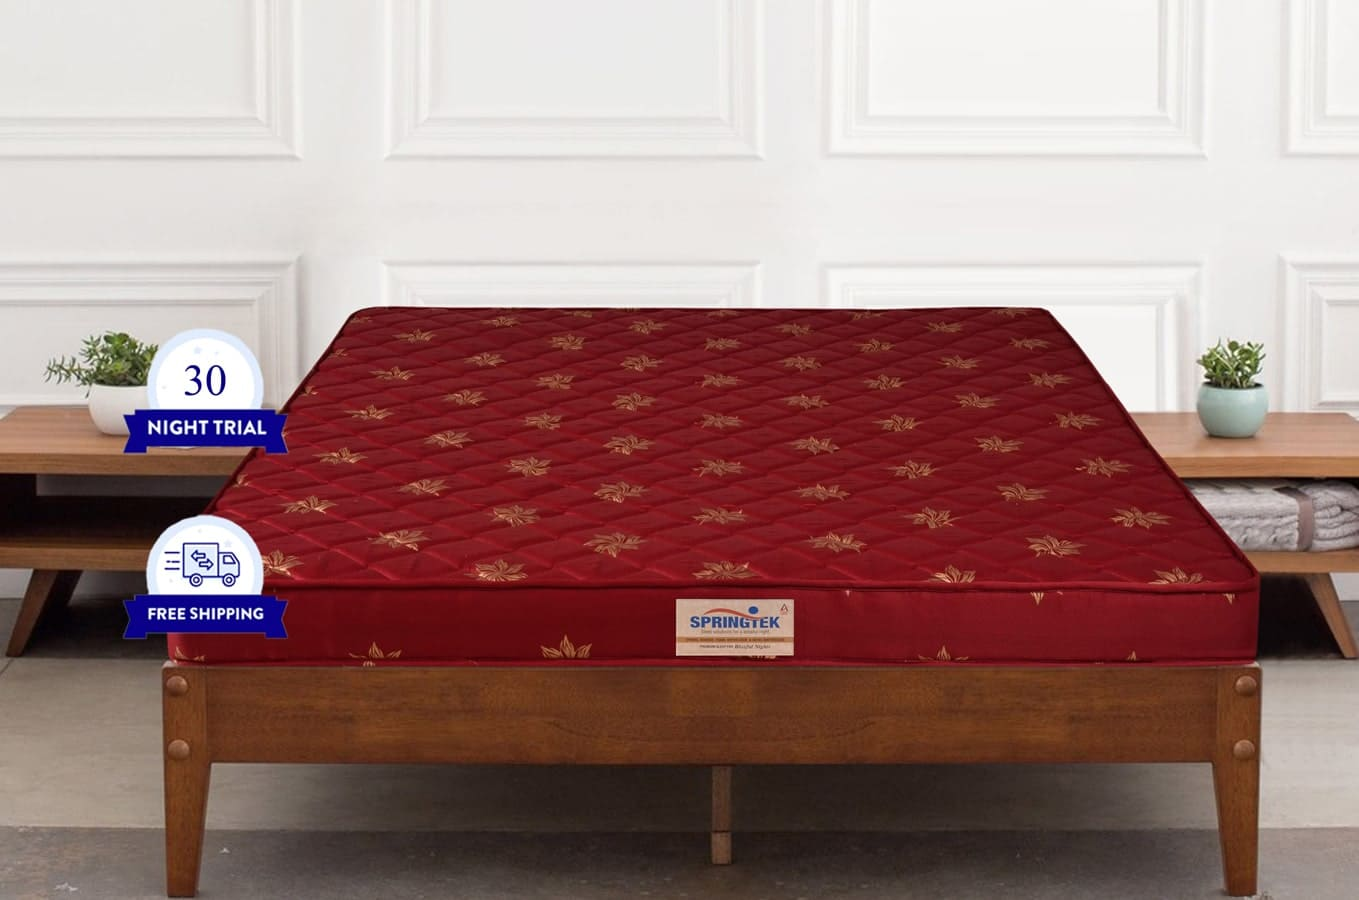 Coir bond mattress